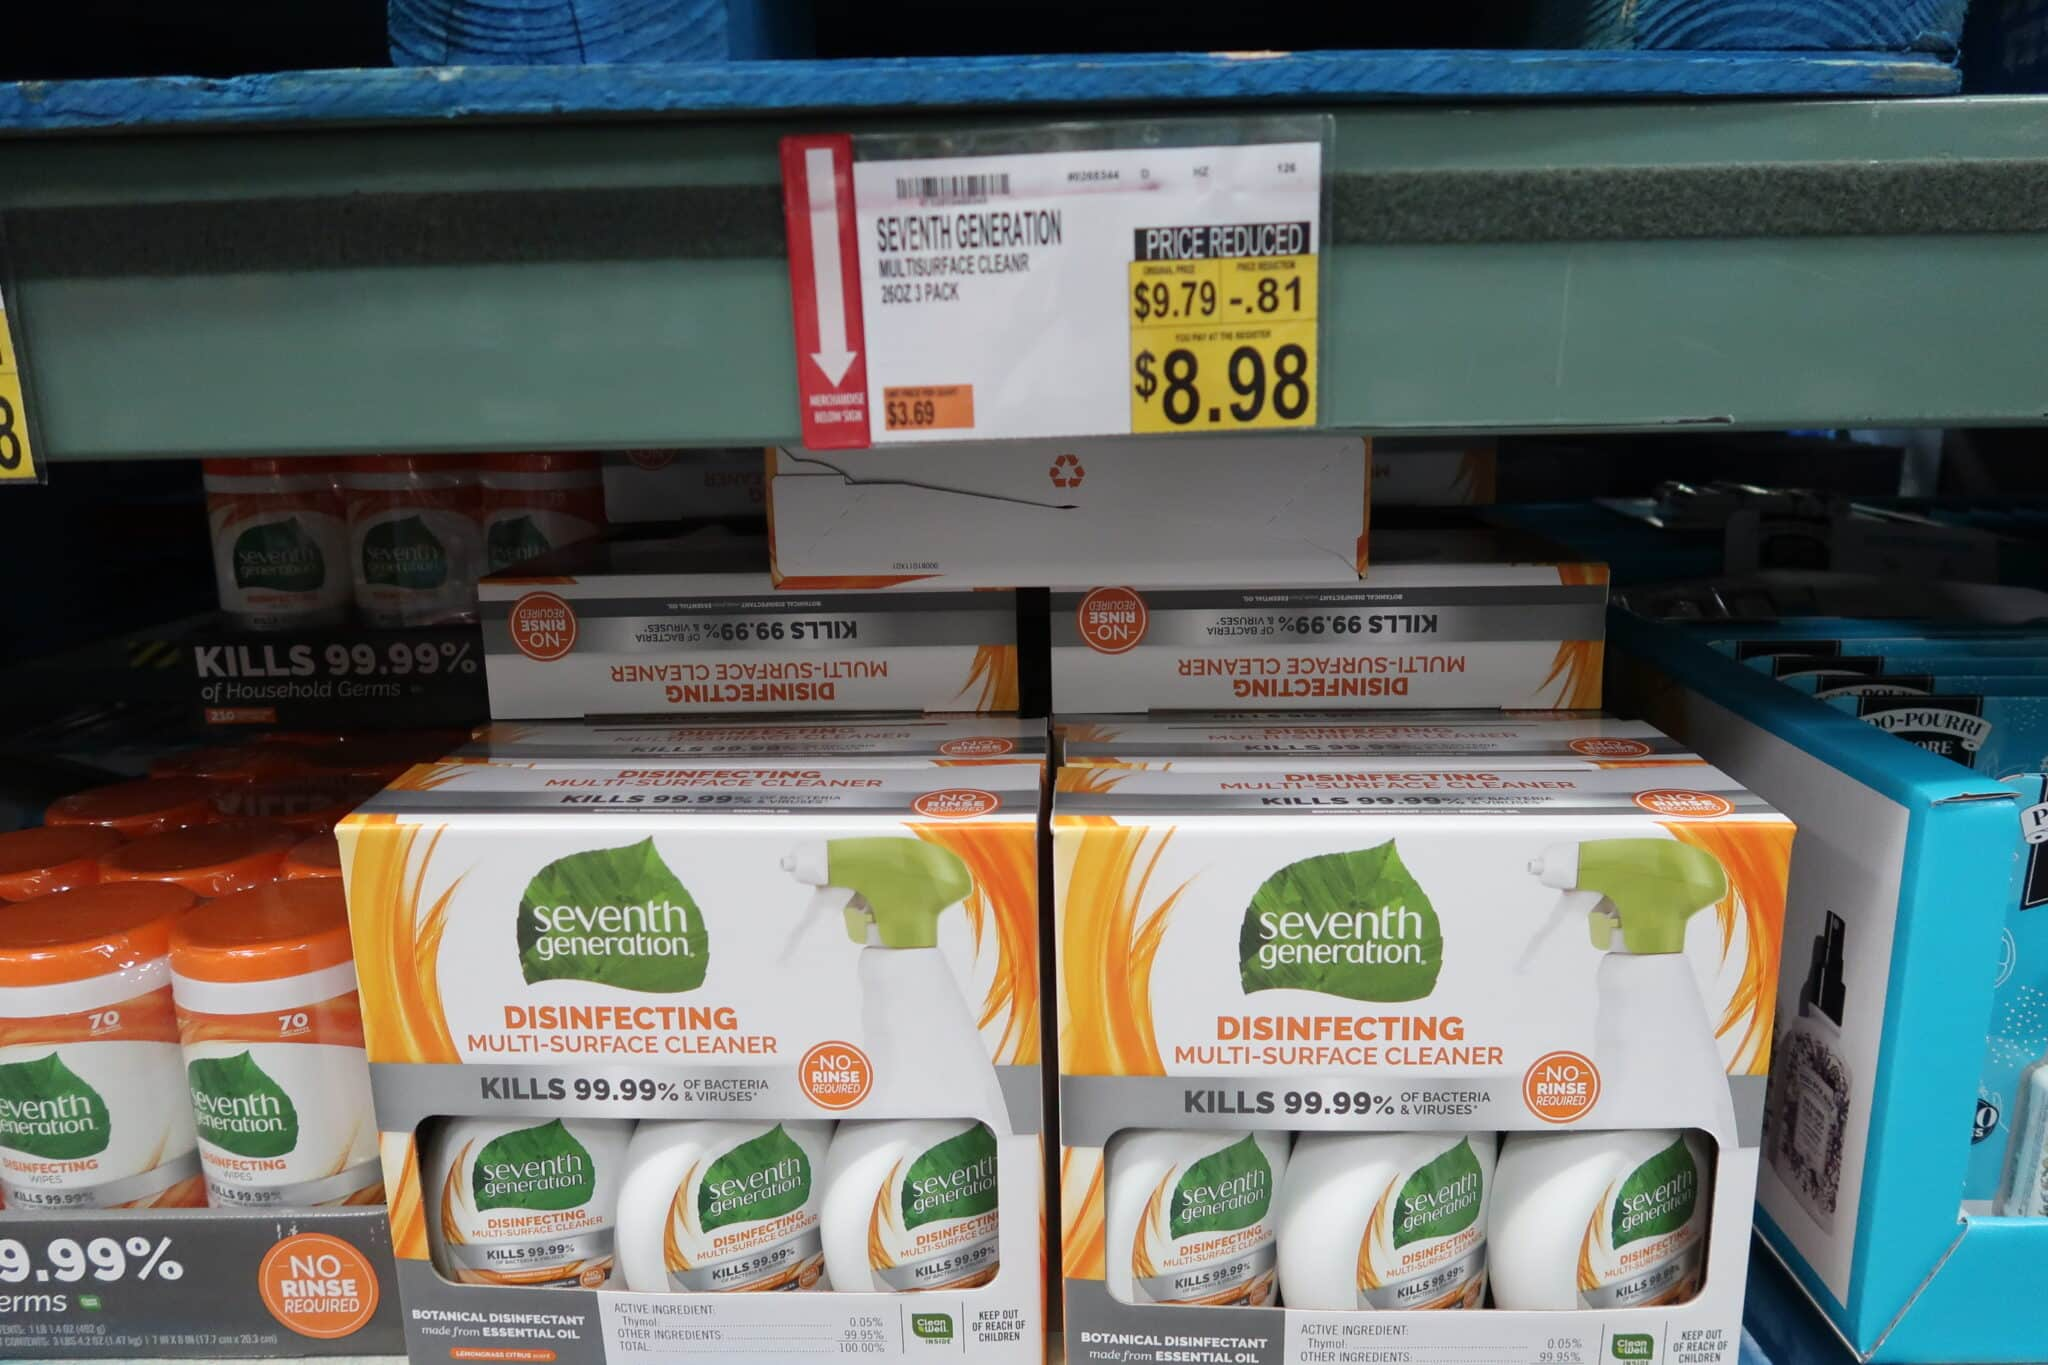 Seventh Generation Multisurface Cleaner $8.98